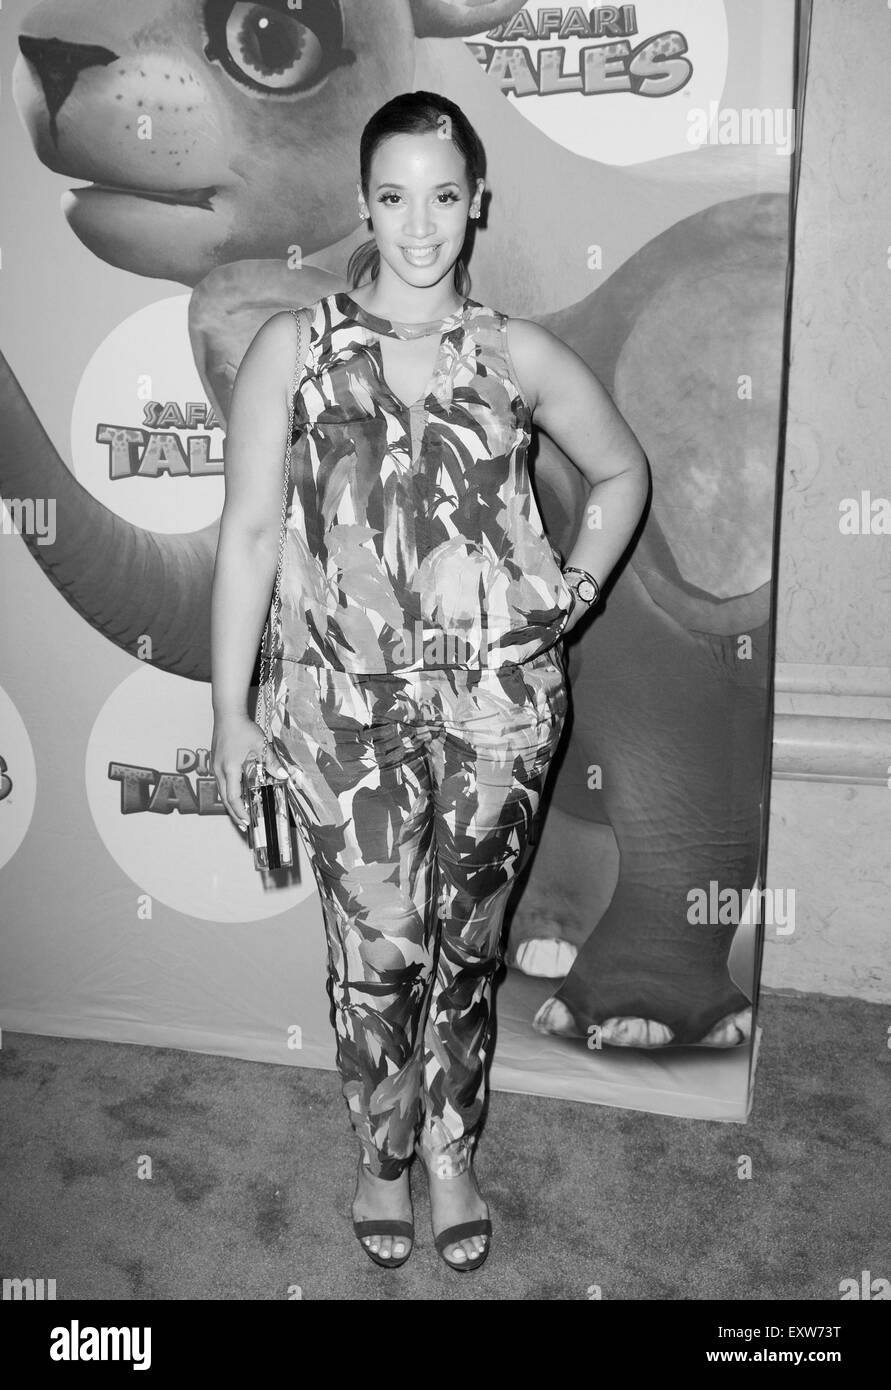 New York, NY, USA. 16th July, 2015. Dascha Polanco at arrivals for Dino Tales and Safari Tales Launch Party, The - Stock Image